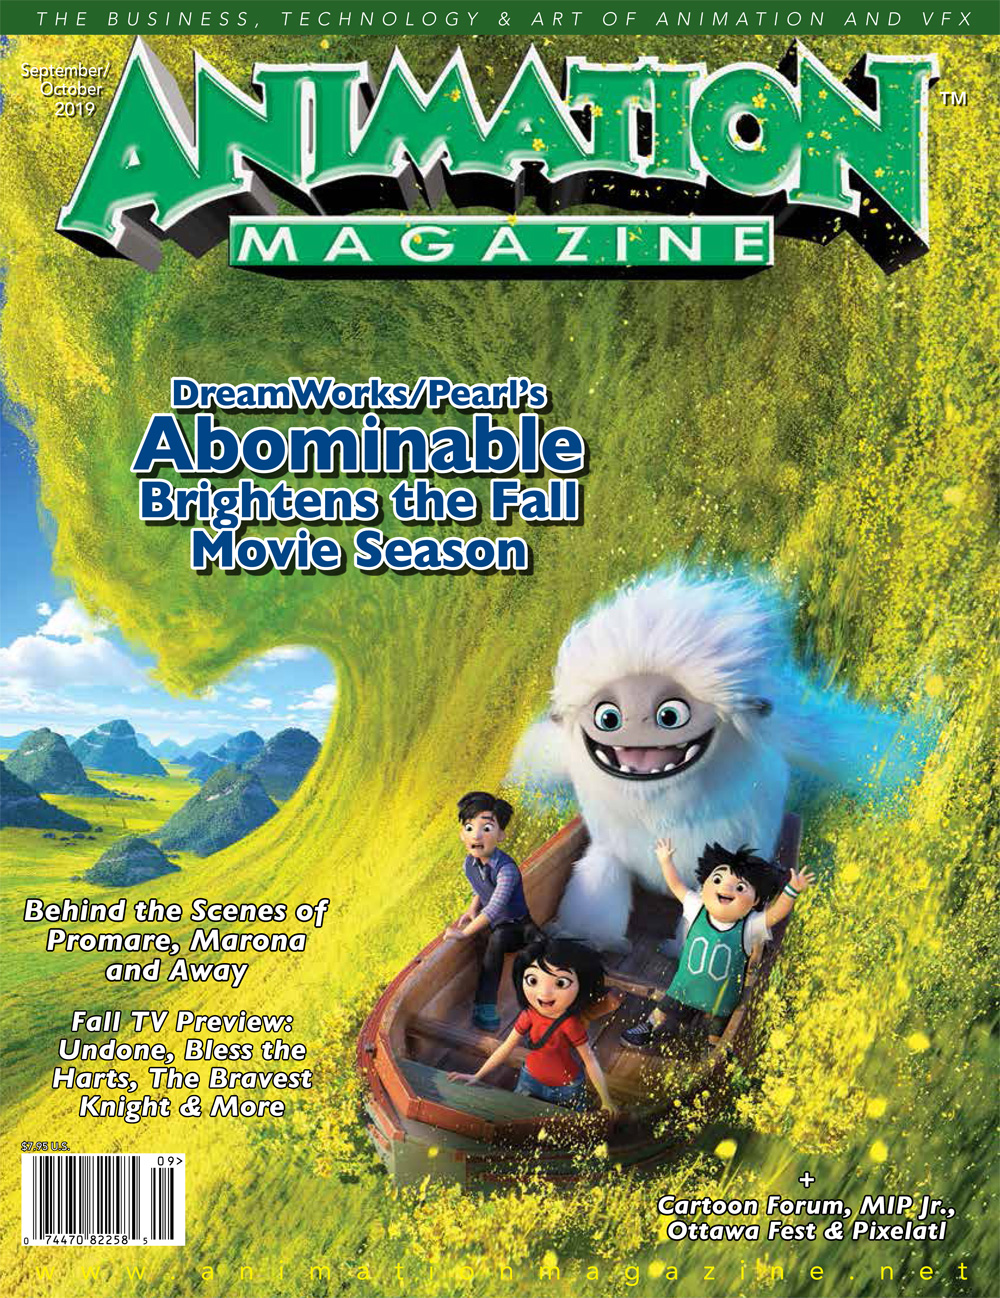 Animation Magazine - #293 September/October 2019